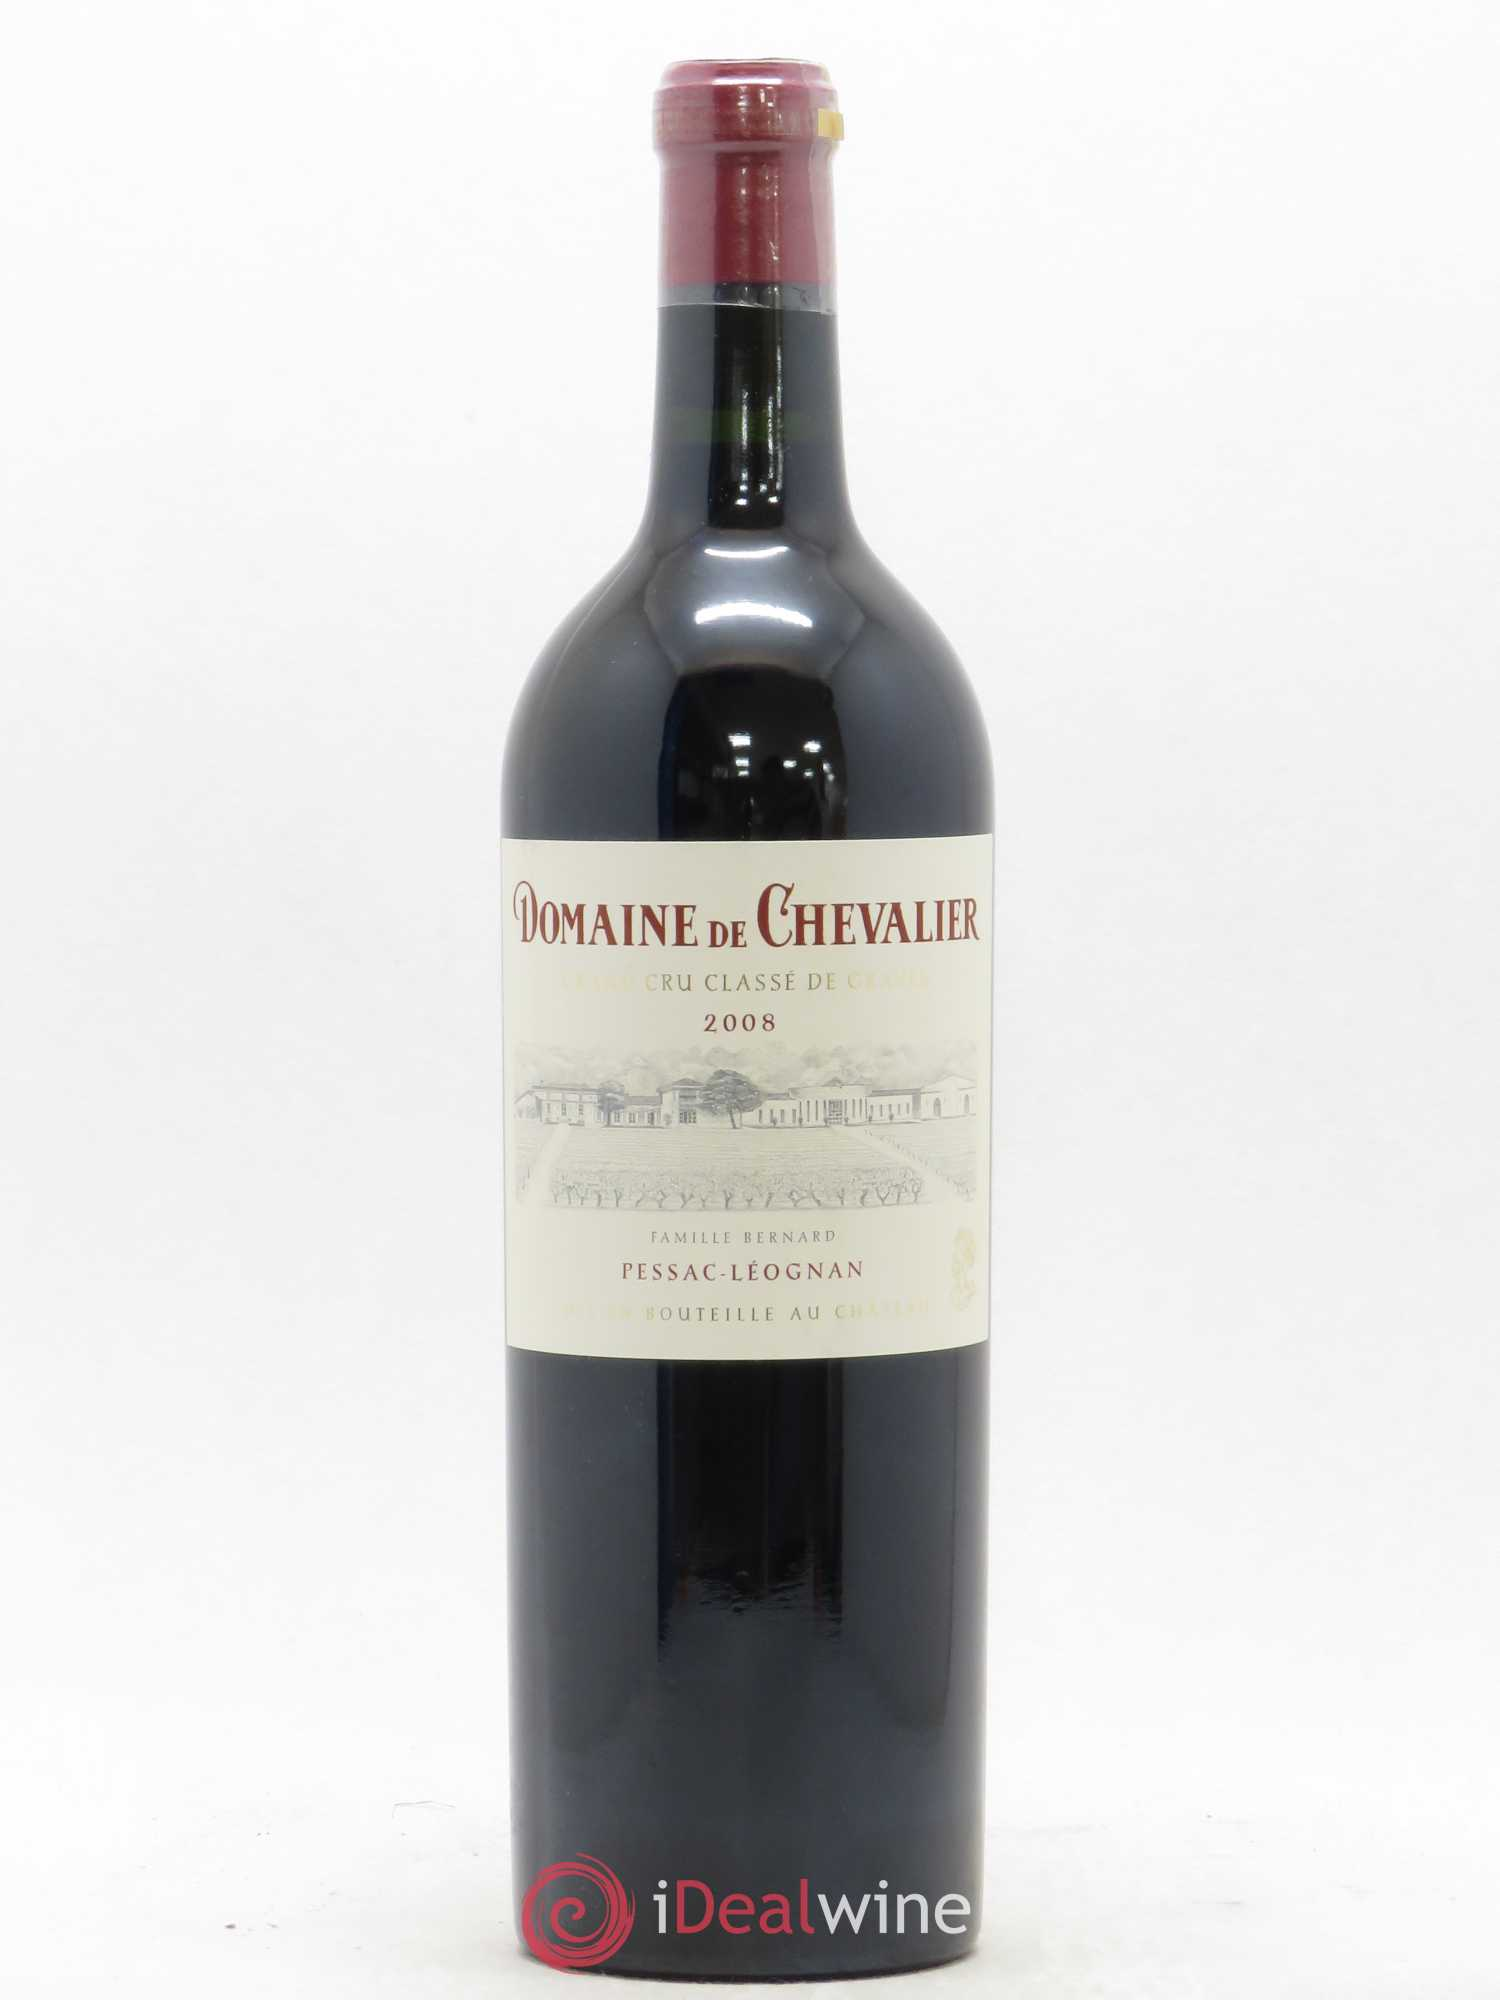 Domaine de Chevalier Cru Classé de Graves  2008 - Lot of 1 Bottle